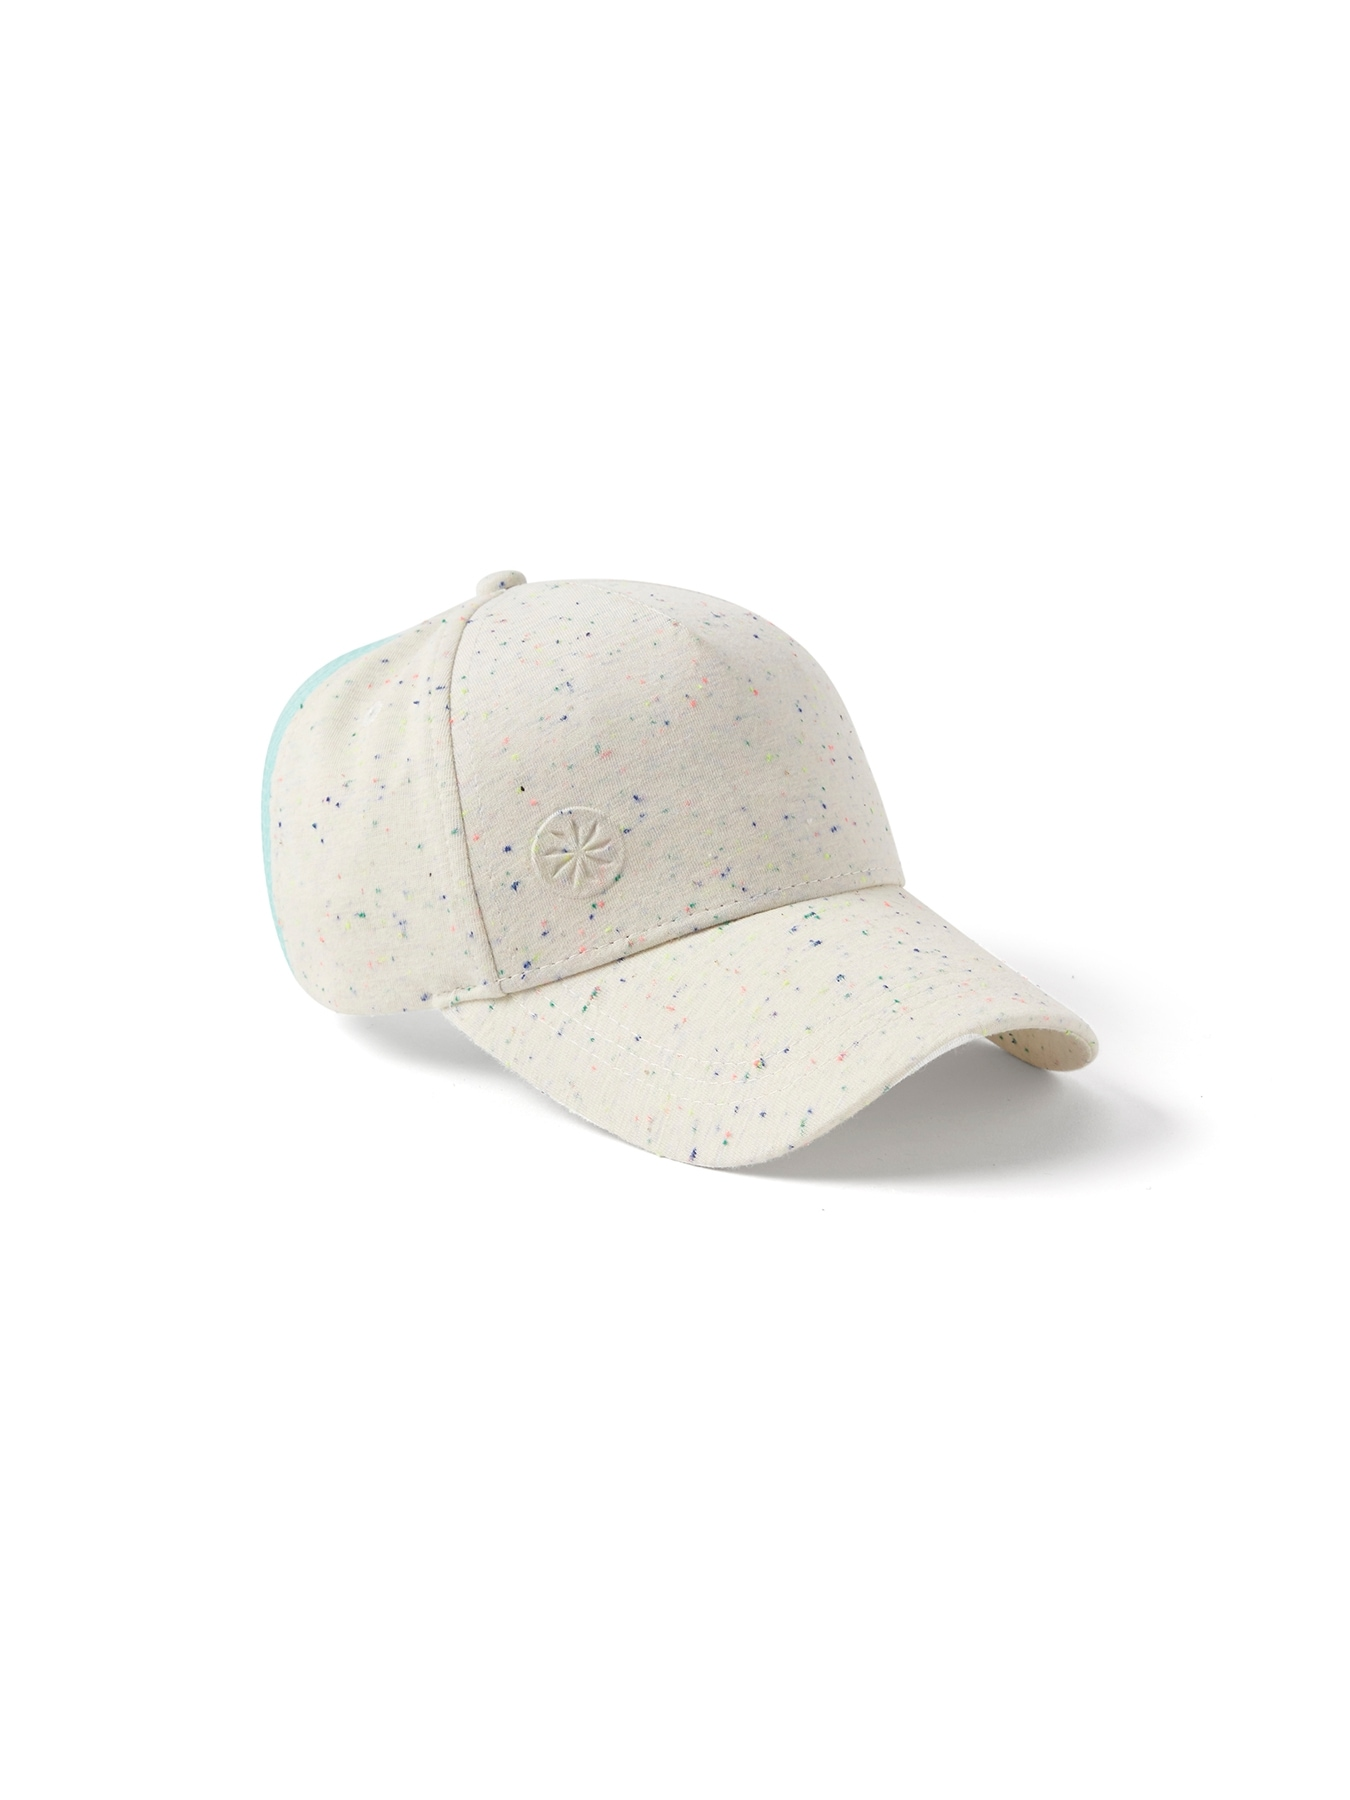 Athleta Girl Confetti Trucker Hat  fa09ed0001c